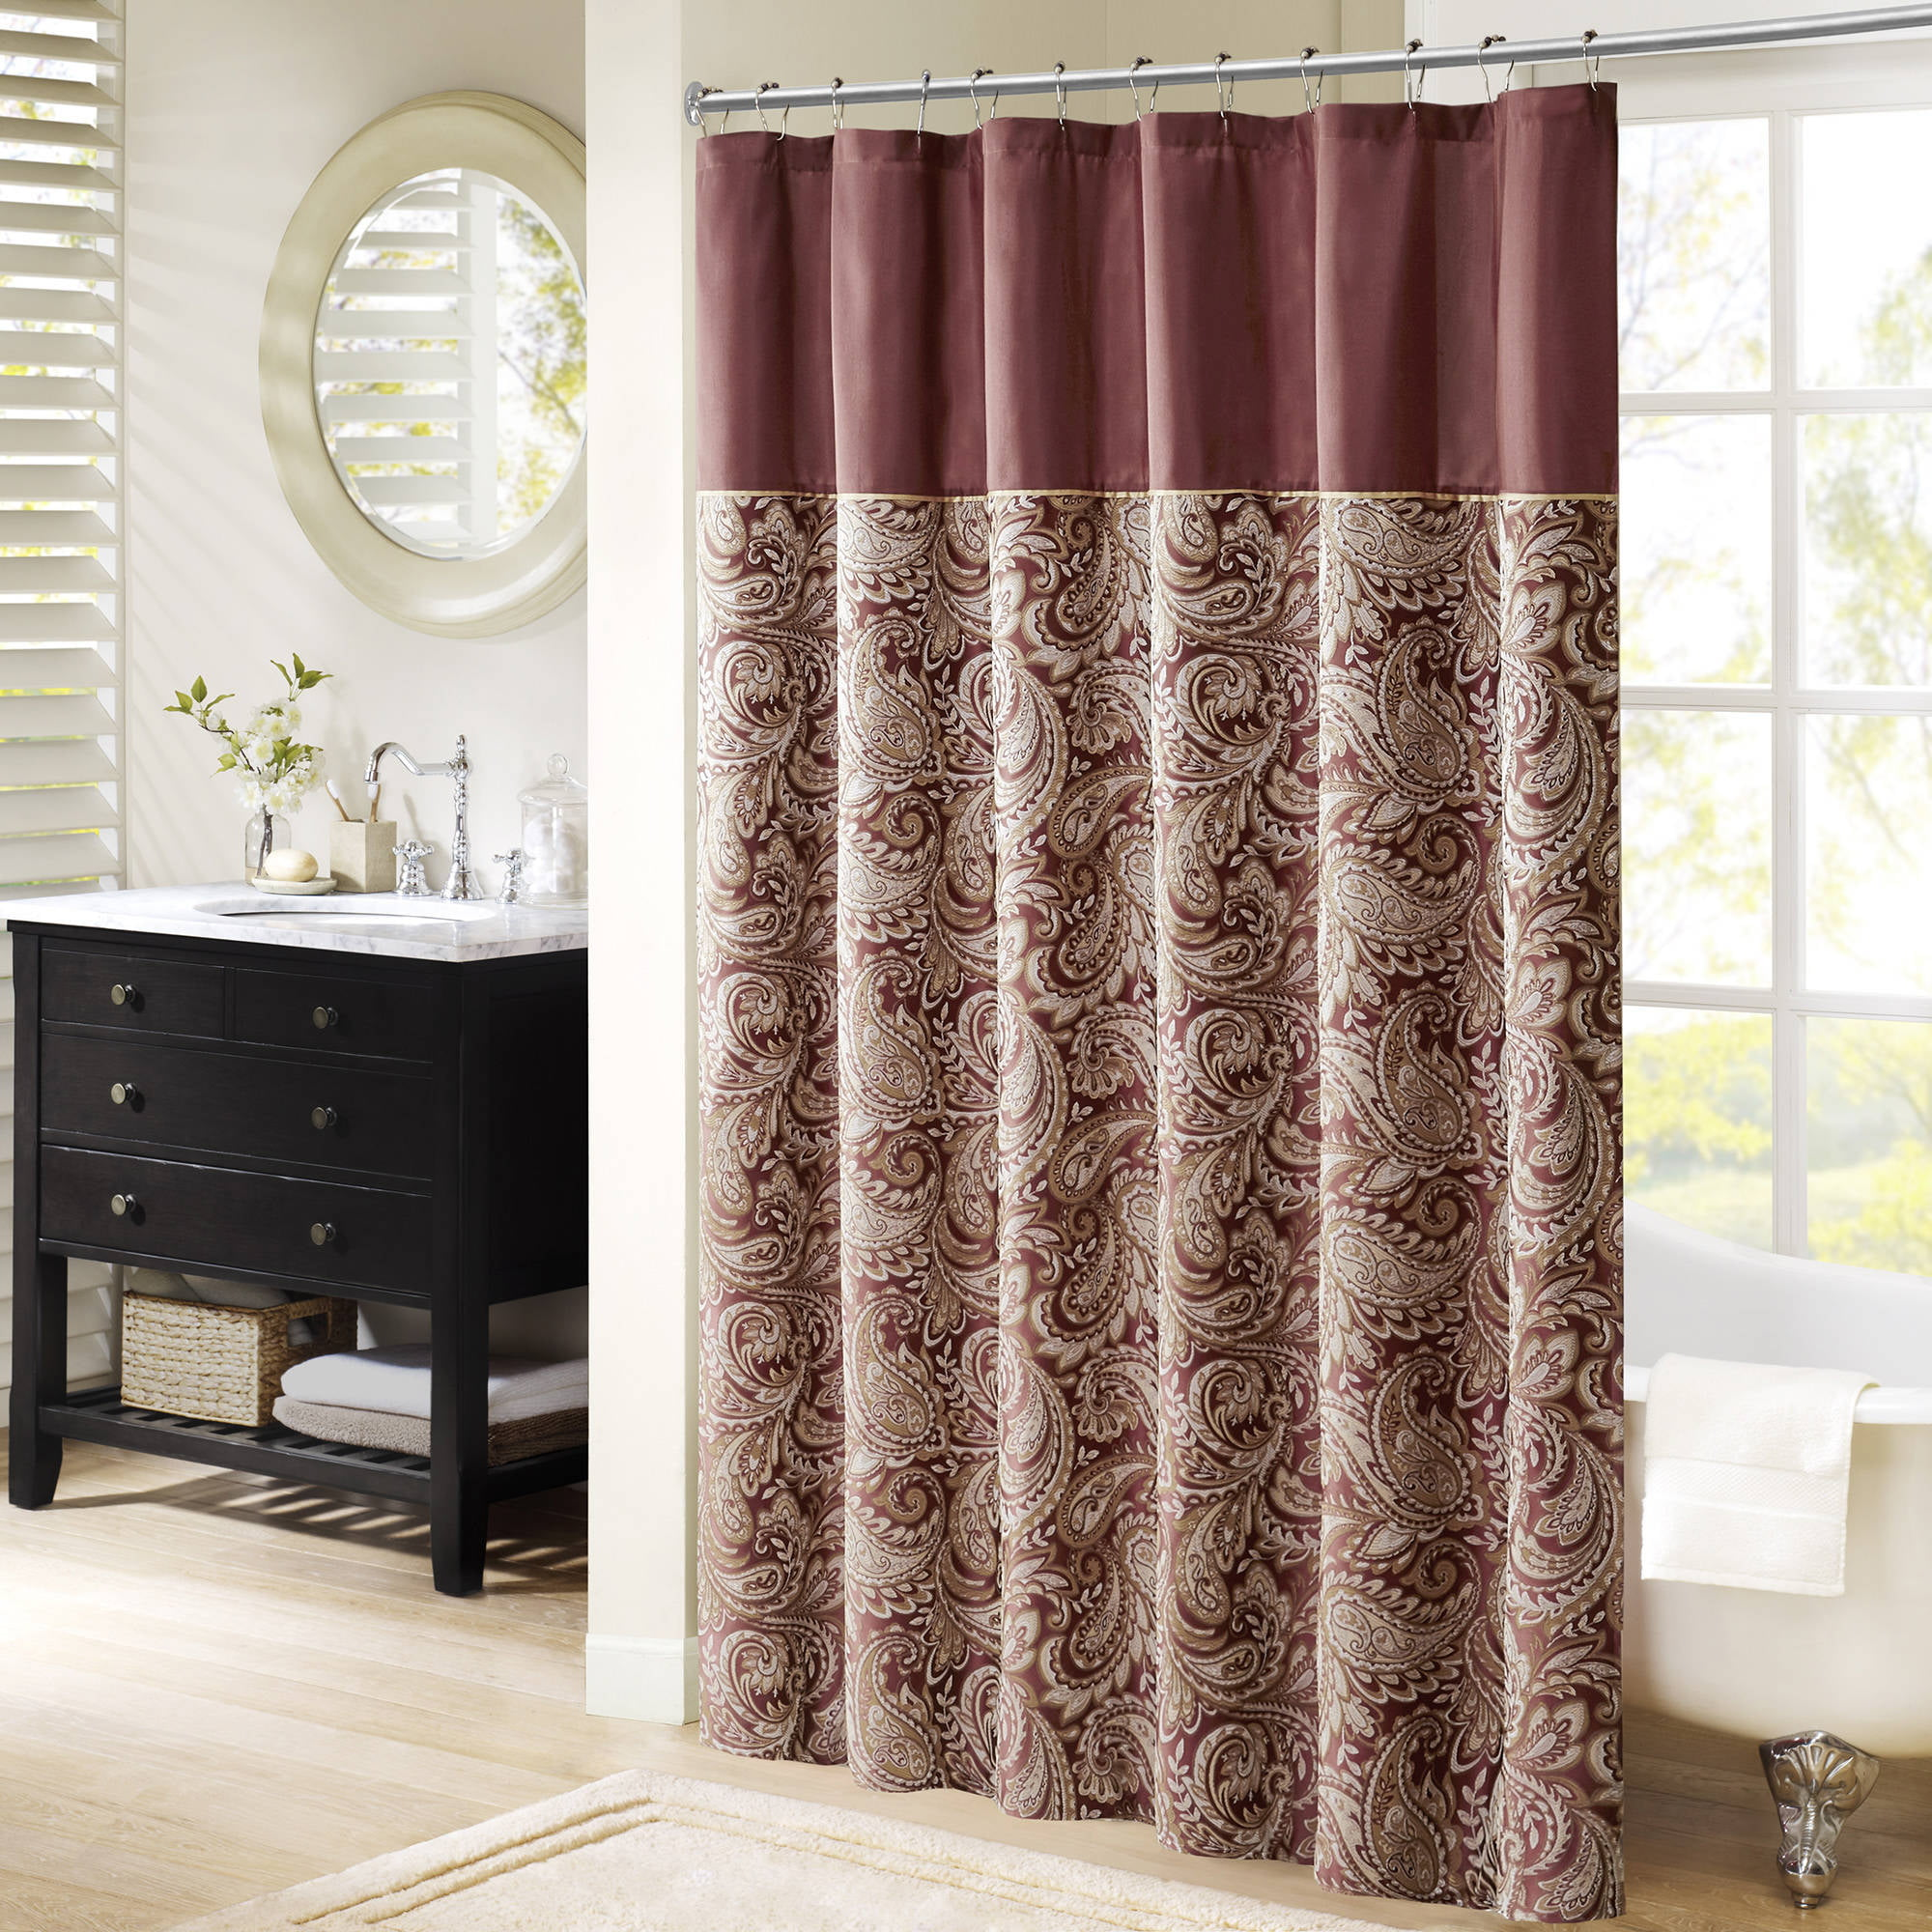 Shower Curtains - Walmart.com